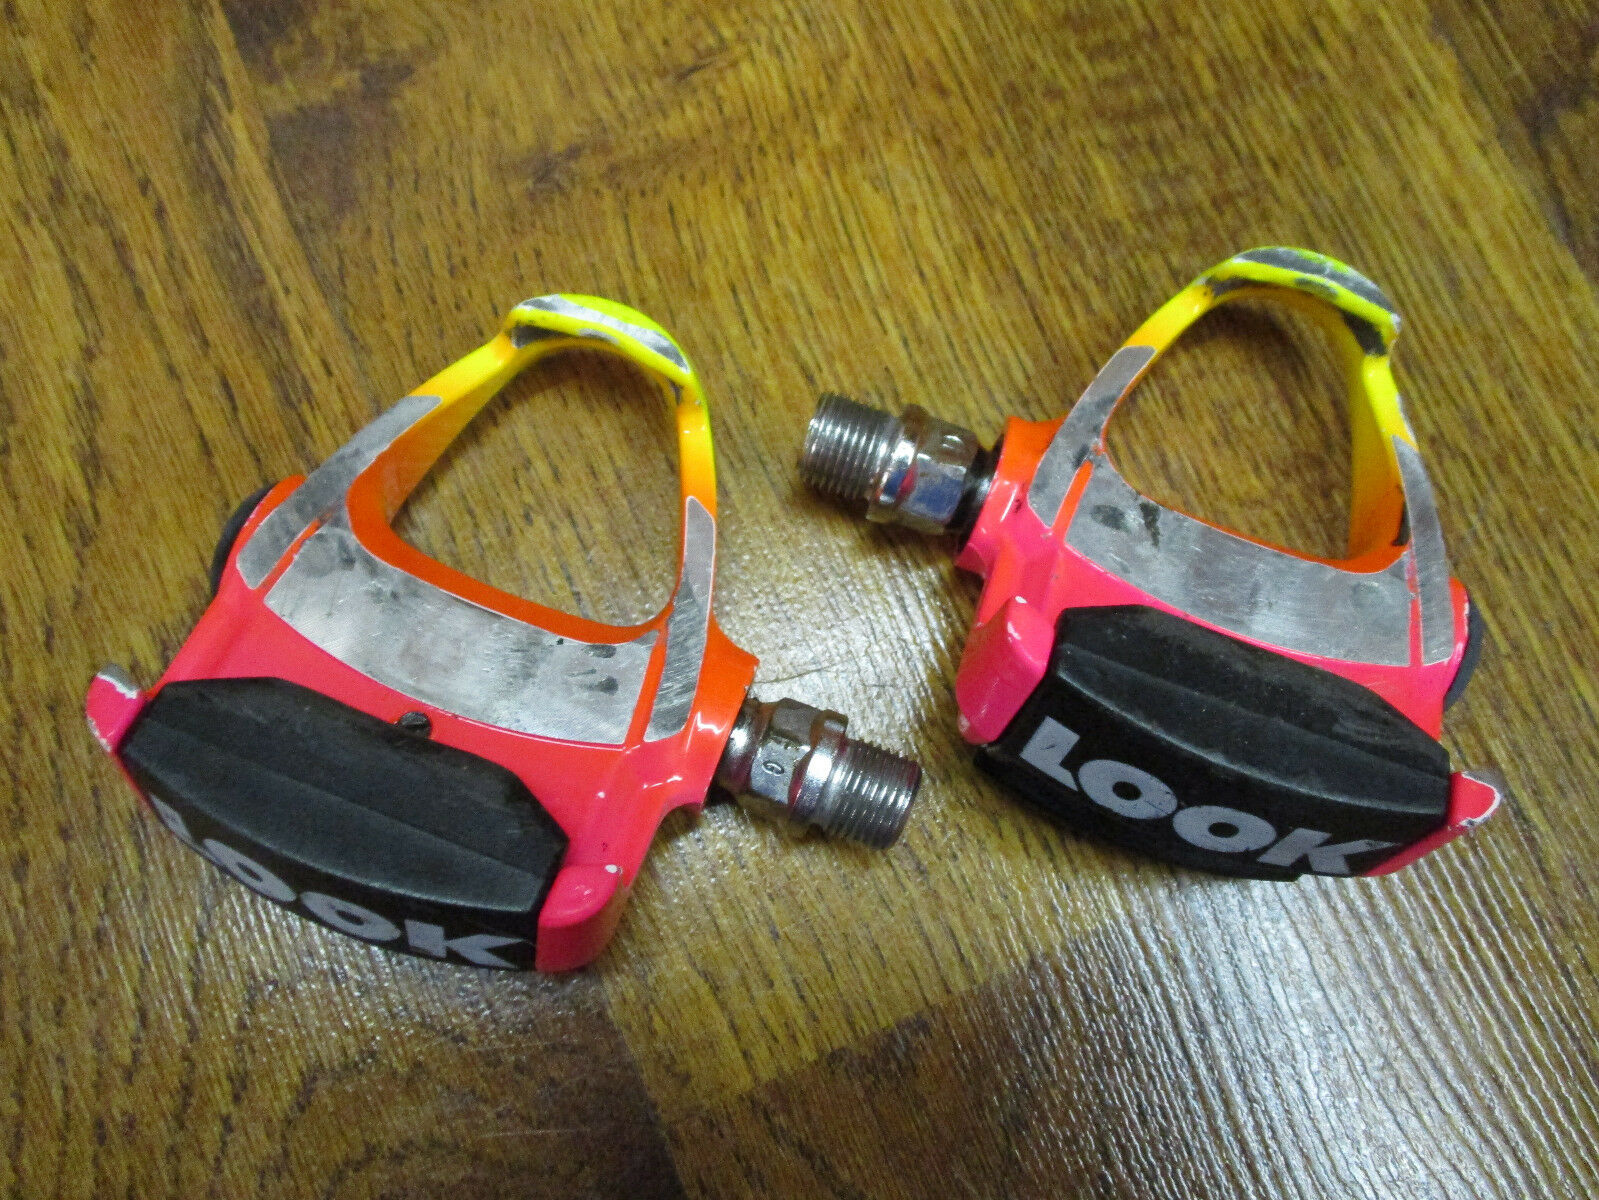 VINTAGE LOOK CARBON ARC CLIPLESS PEDALS RAINBOW FADE - PINK orange YELLOW